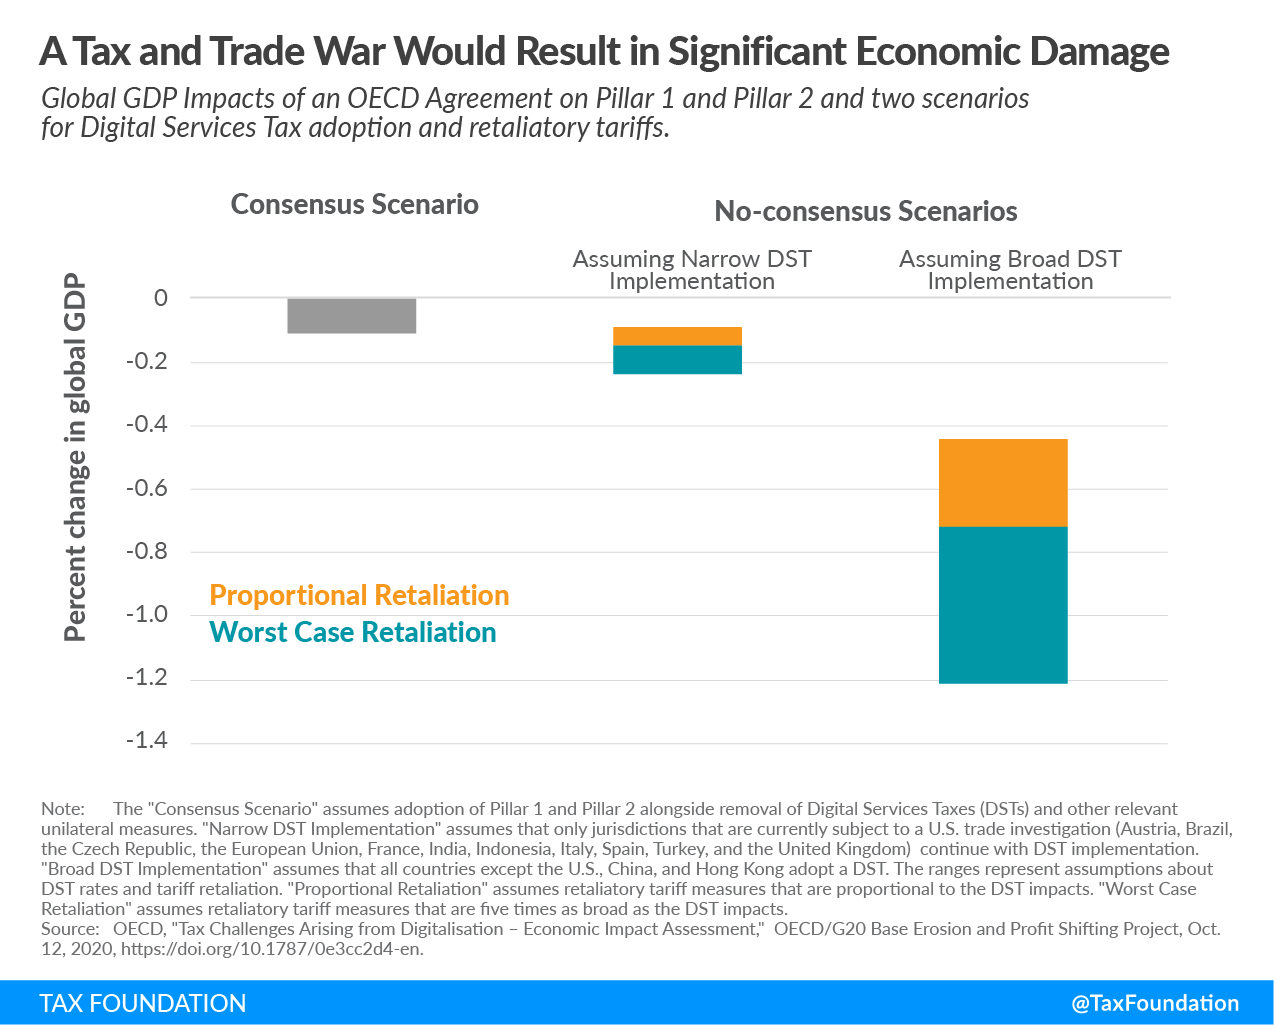 A tax and trade war would result in significant economic damage. OECD Pillar 1 OECD Pillar 2 OECD BEPS OECD impact assessment, digital services tax adoption and retaliatory tariffs